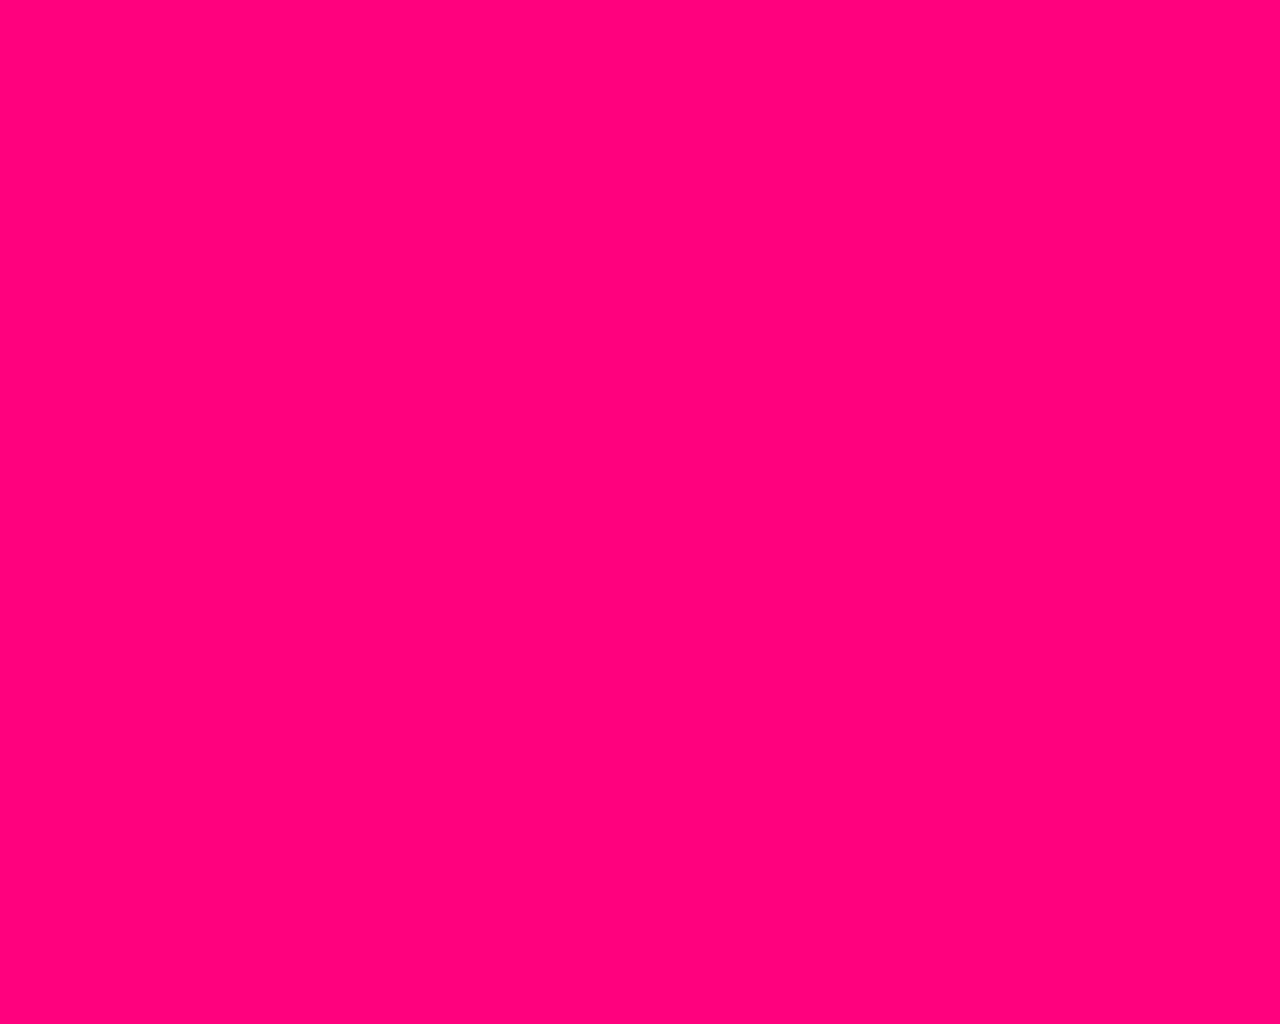 Bright Pink Party Napkins 1280x1024